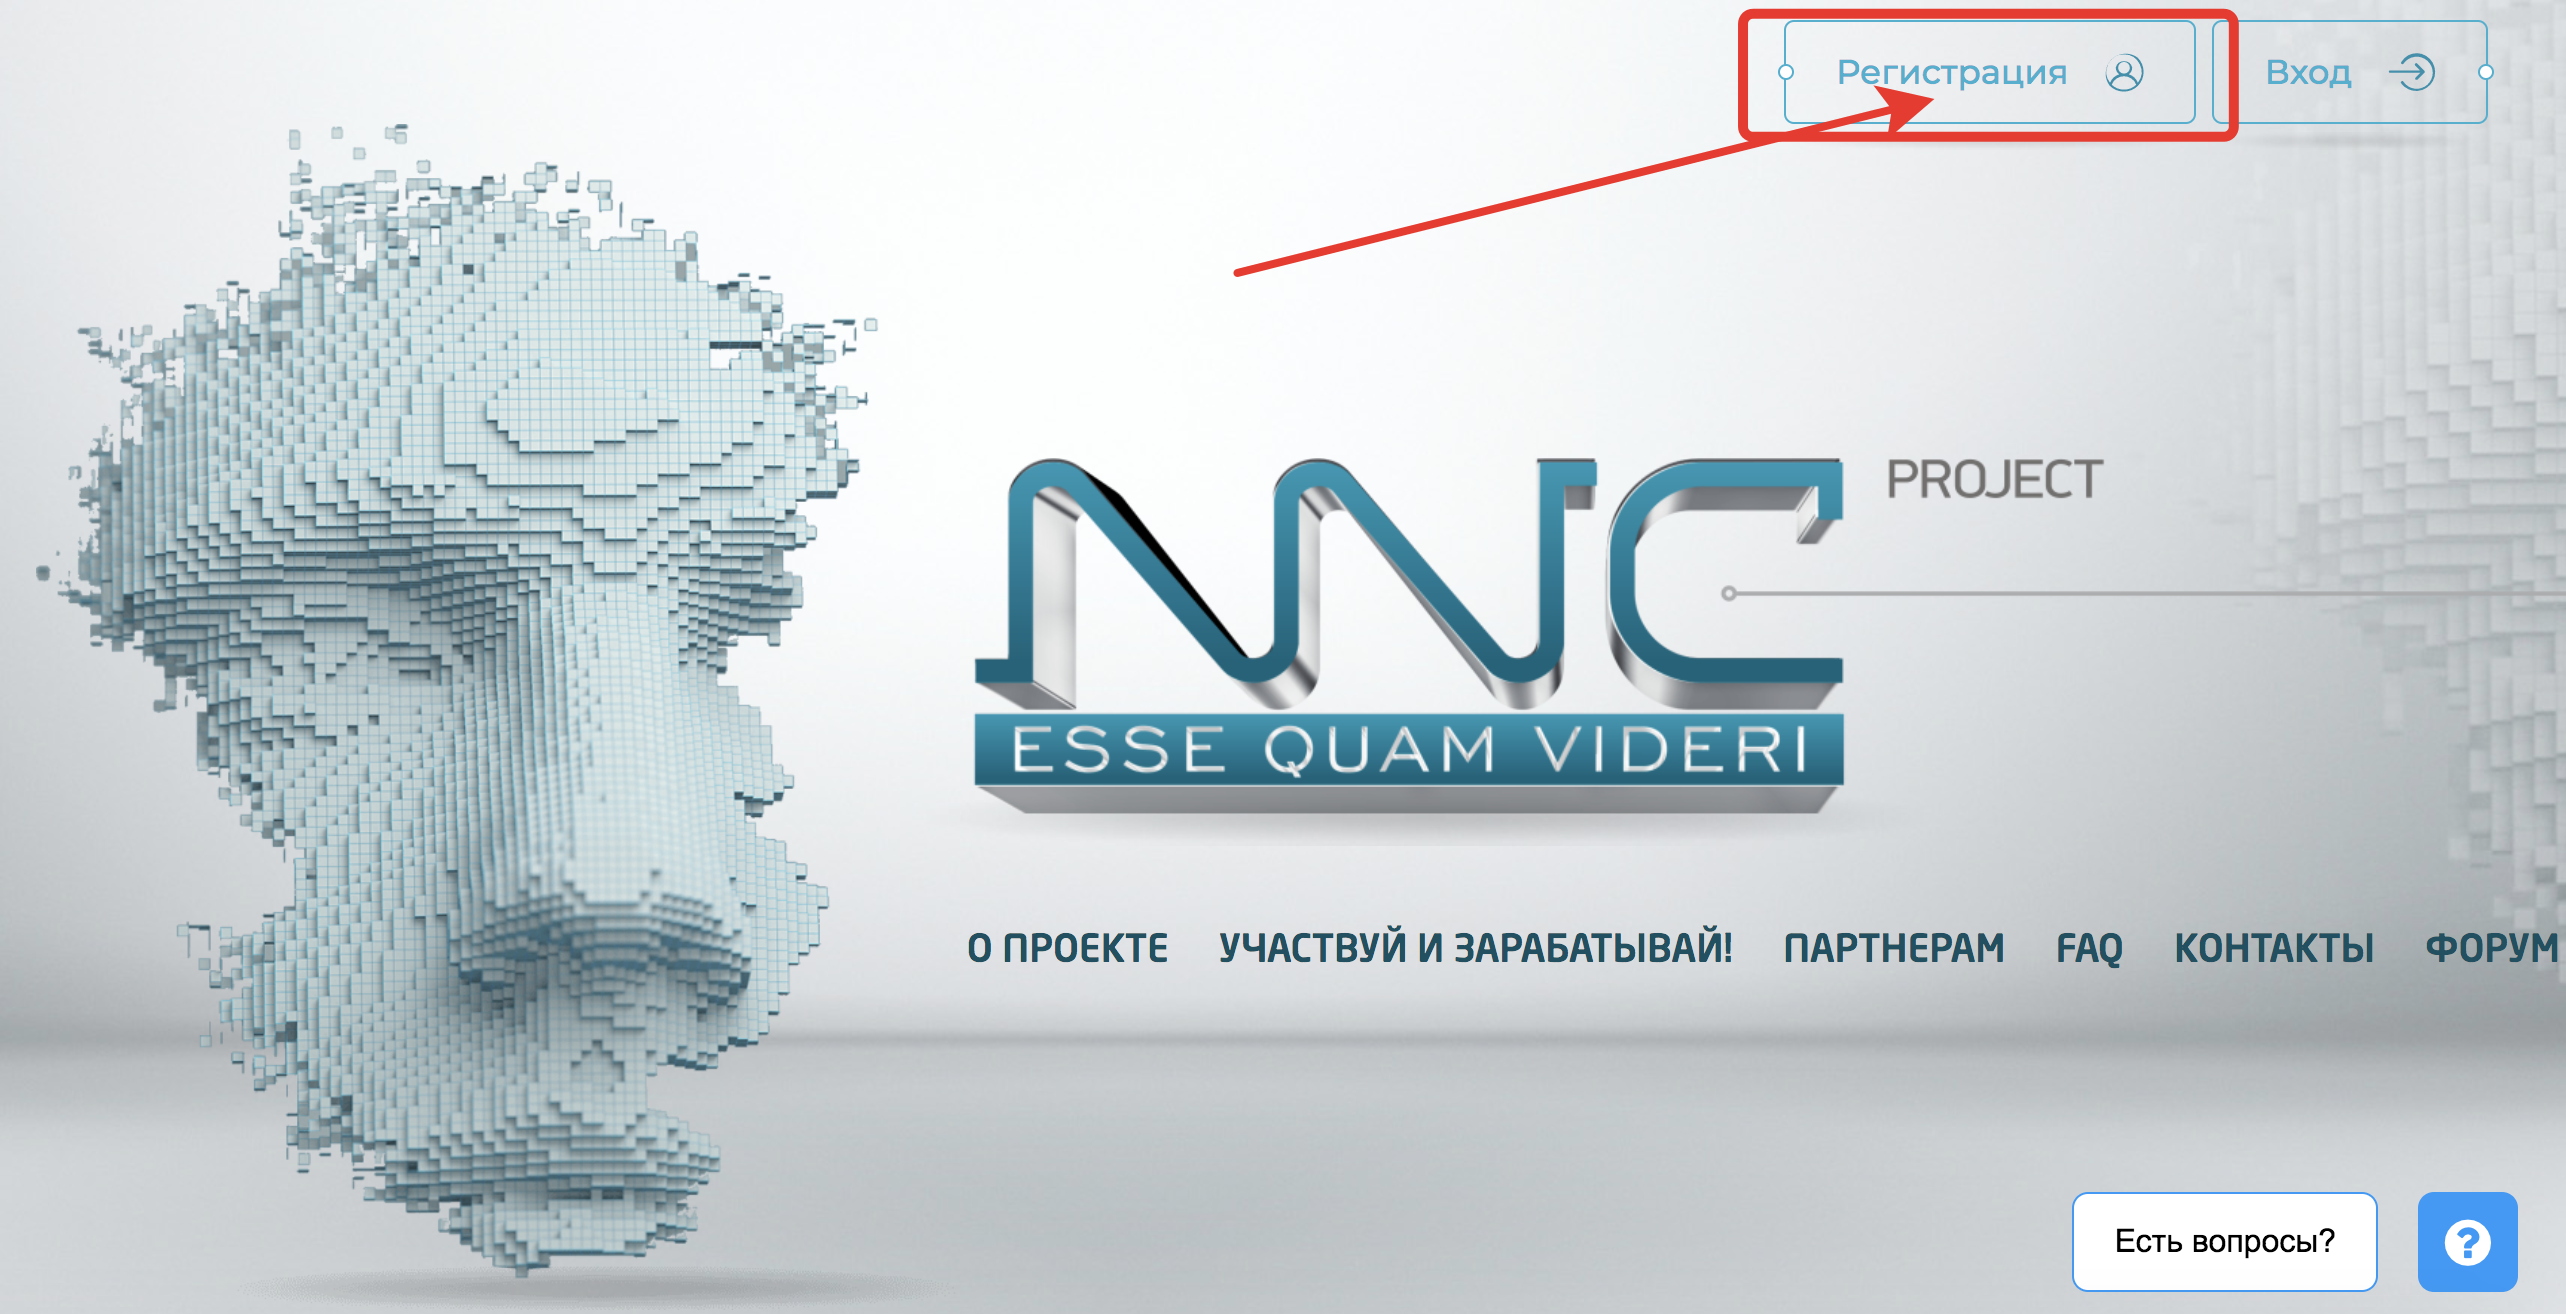 nnc.systems